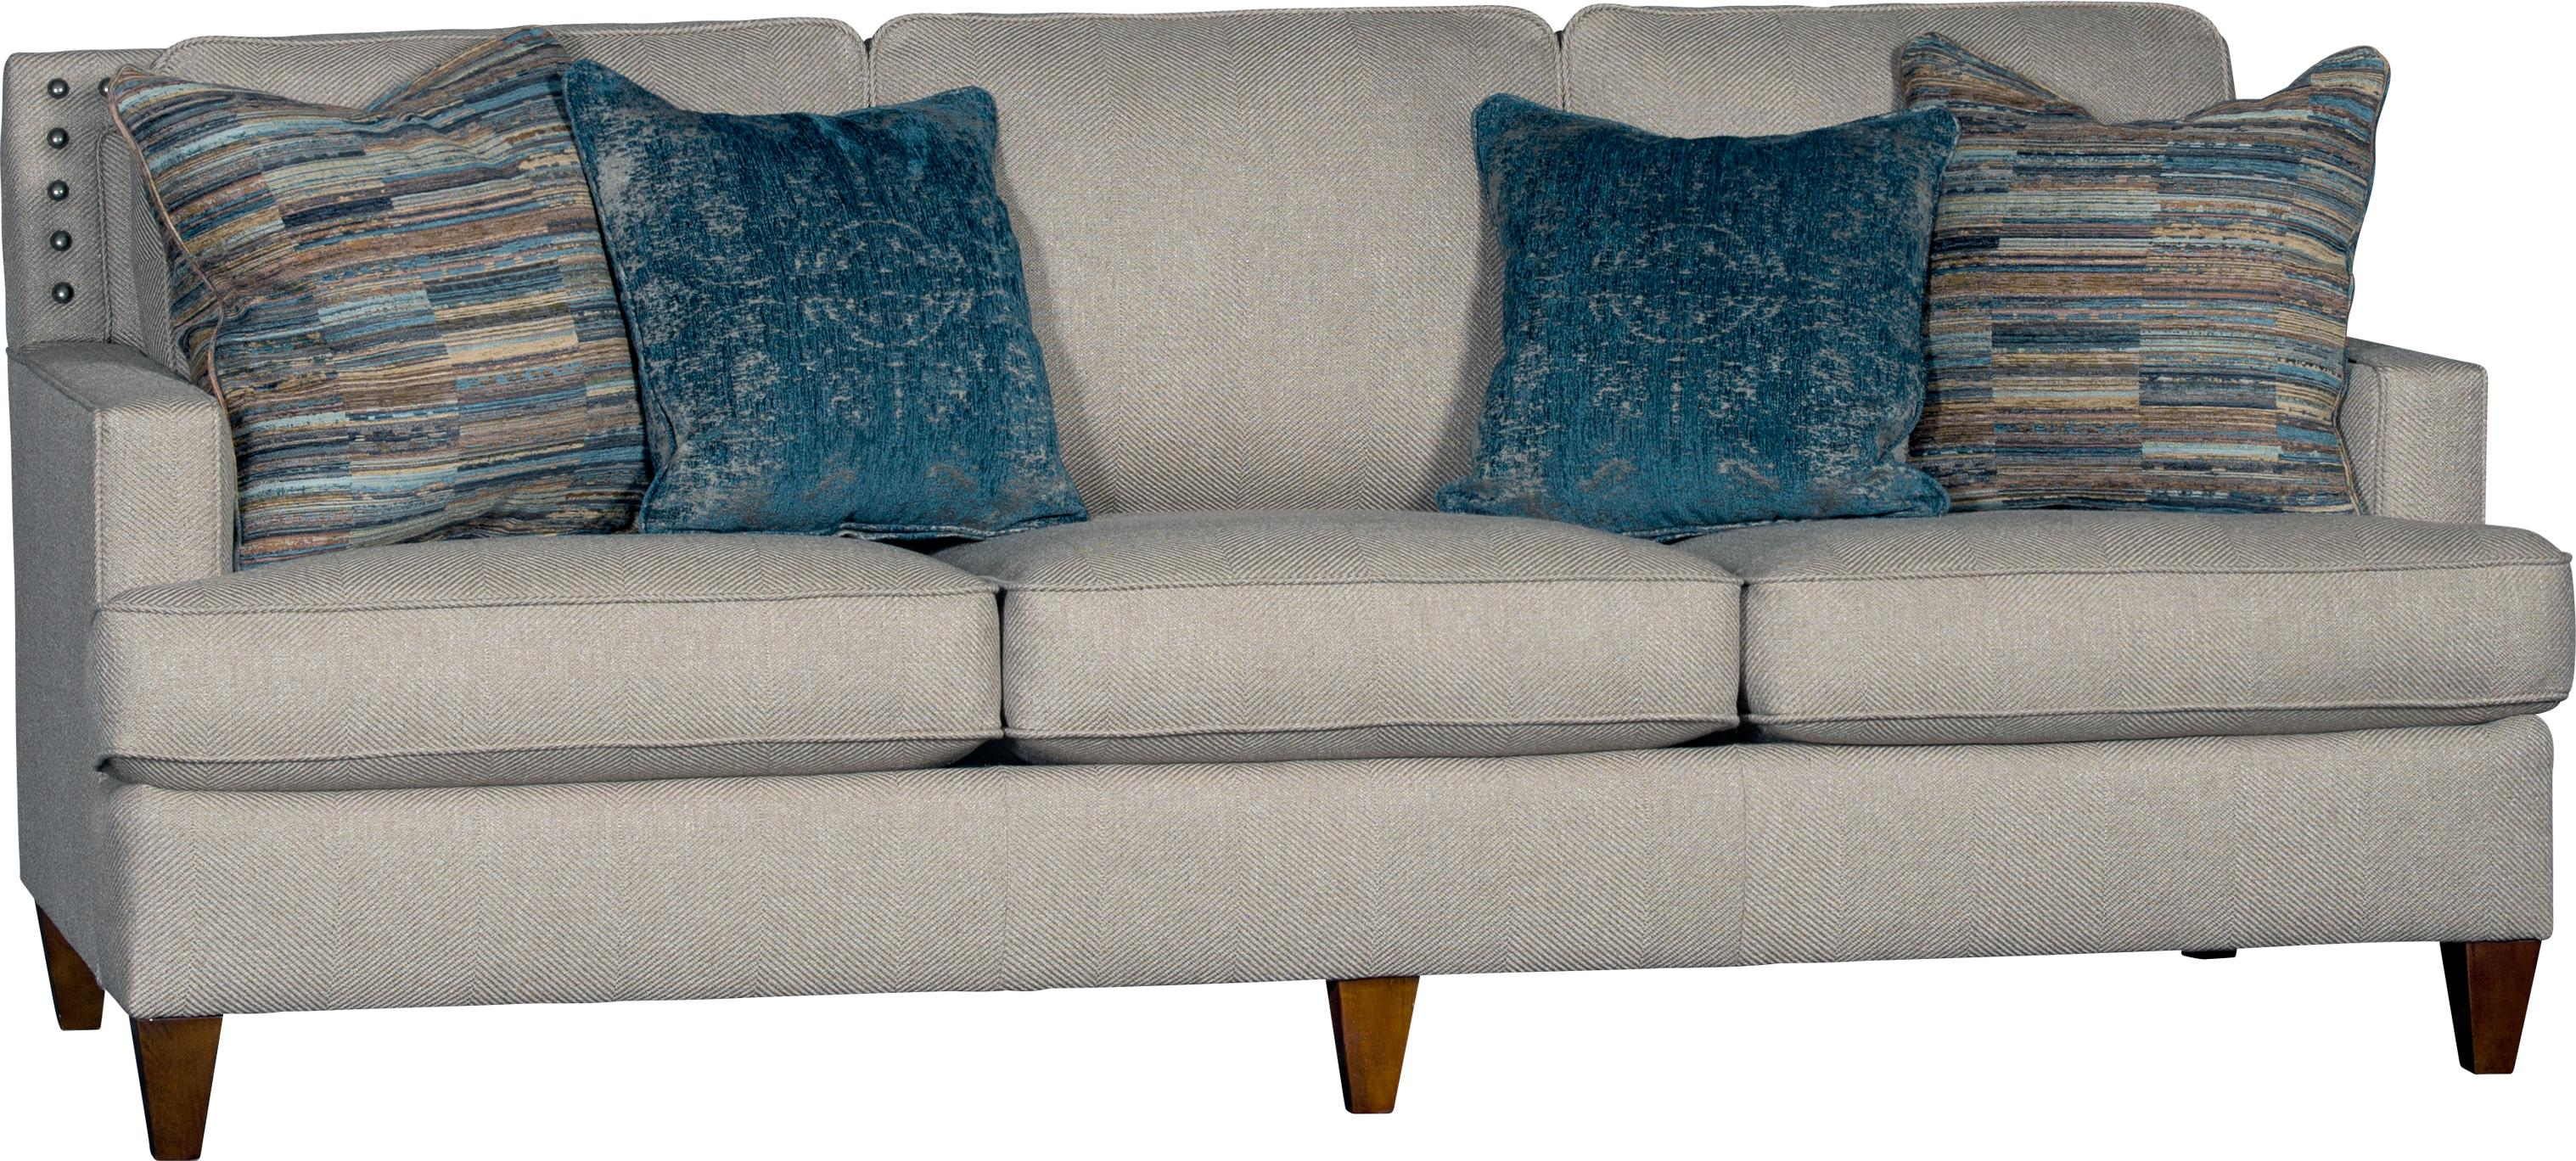 Mayo 3030 Sofa - Item Number: 3030F10-DowntonCoast